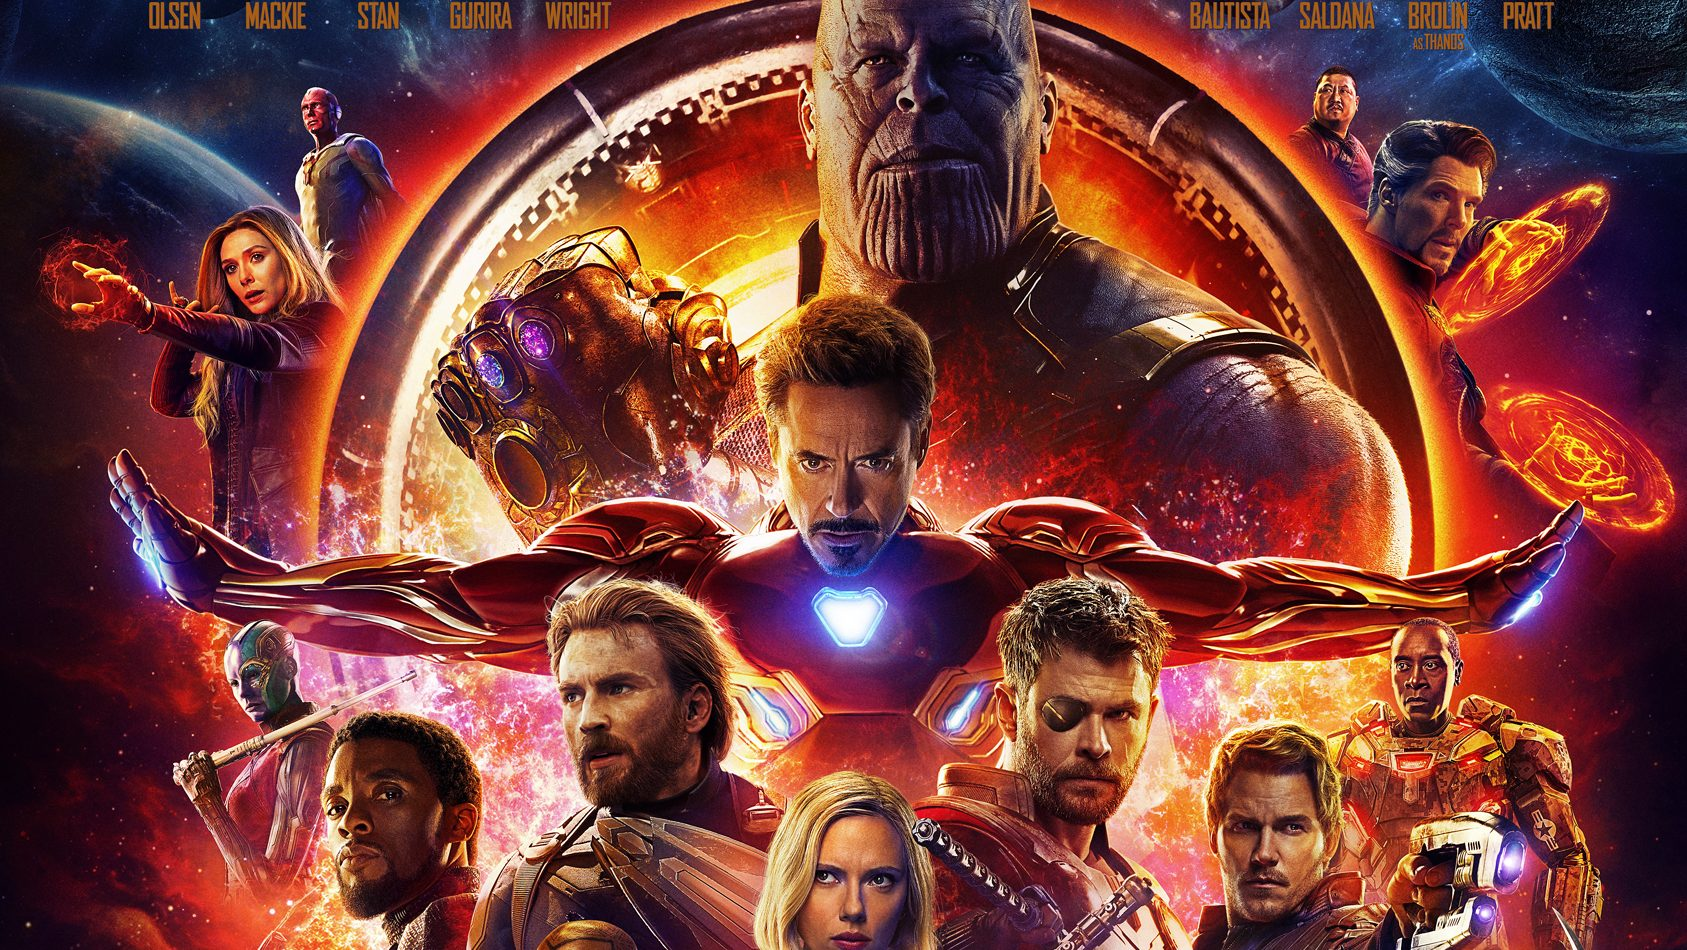 new avengers infinity war poster released with the second trailer